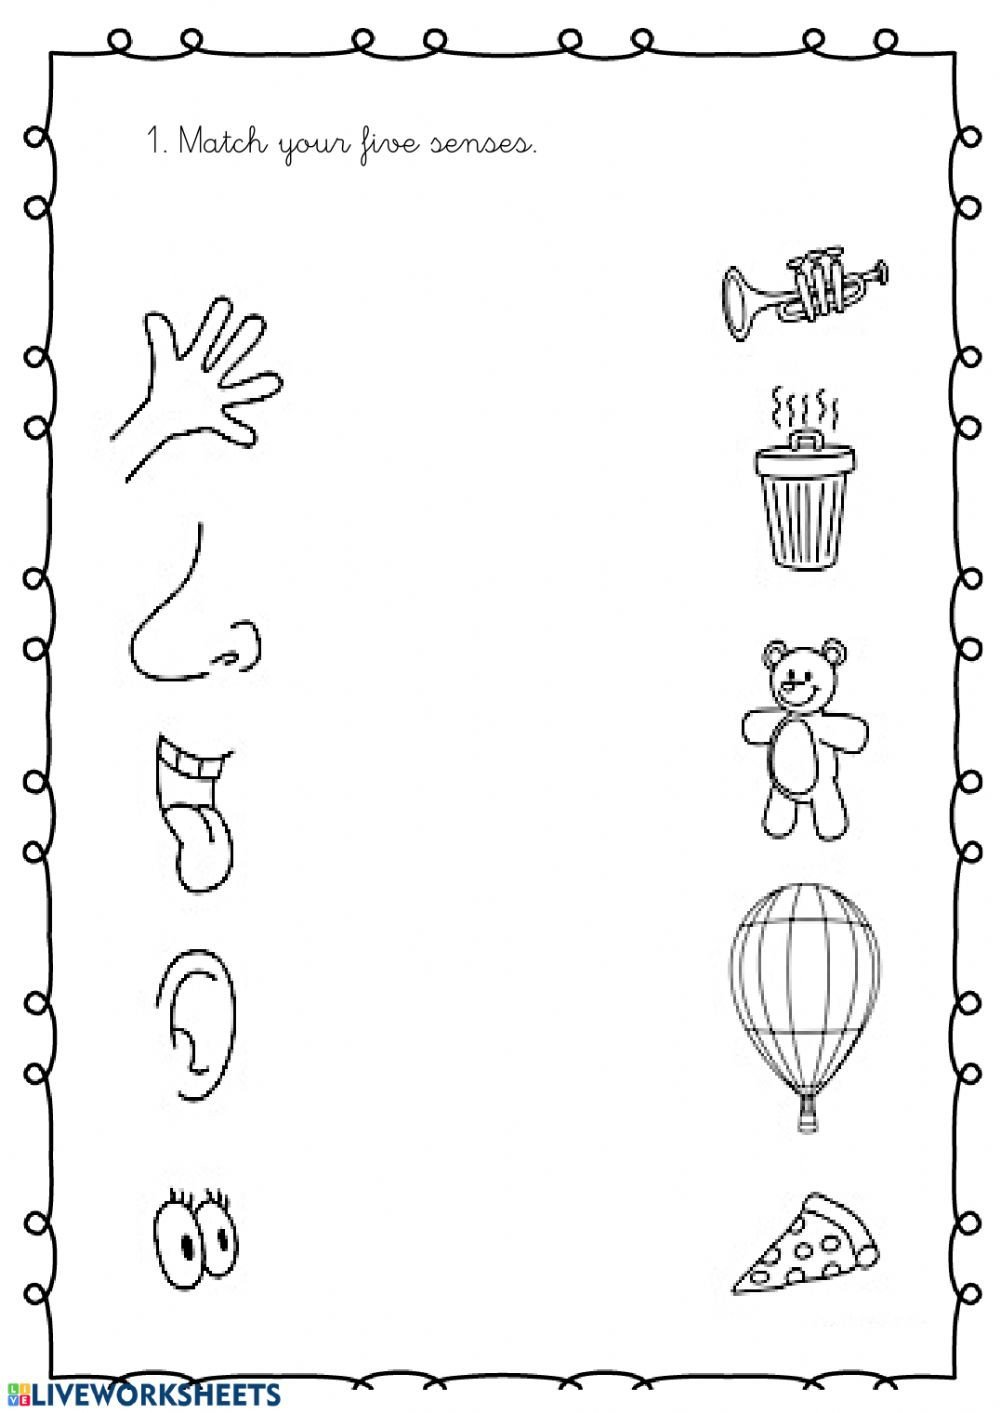 Five Senses Worksheets Pdf My 5 Senses Interactive Worksheet